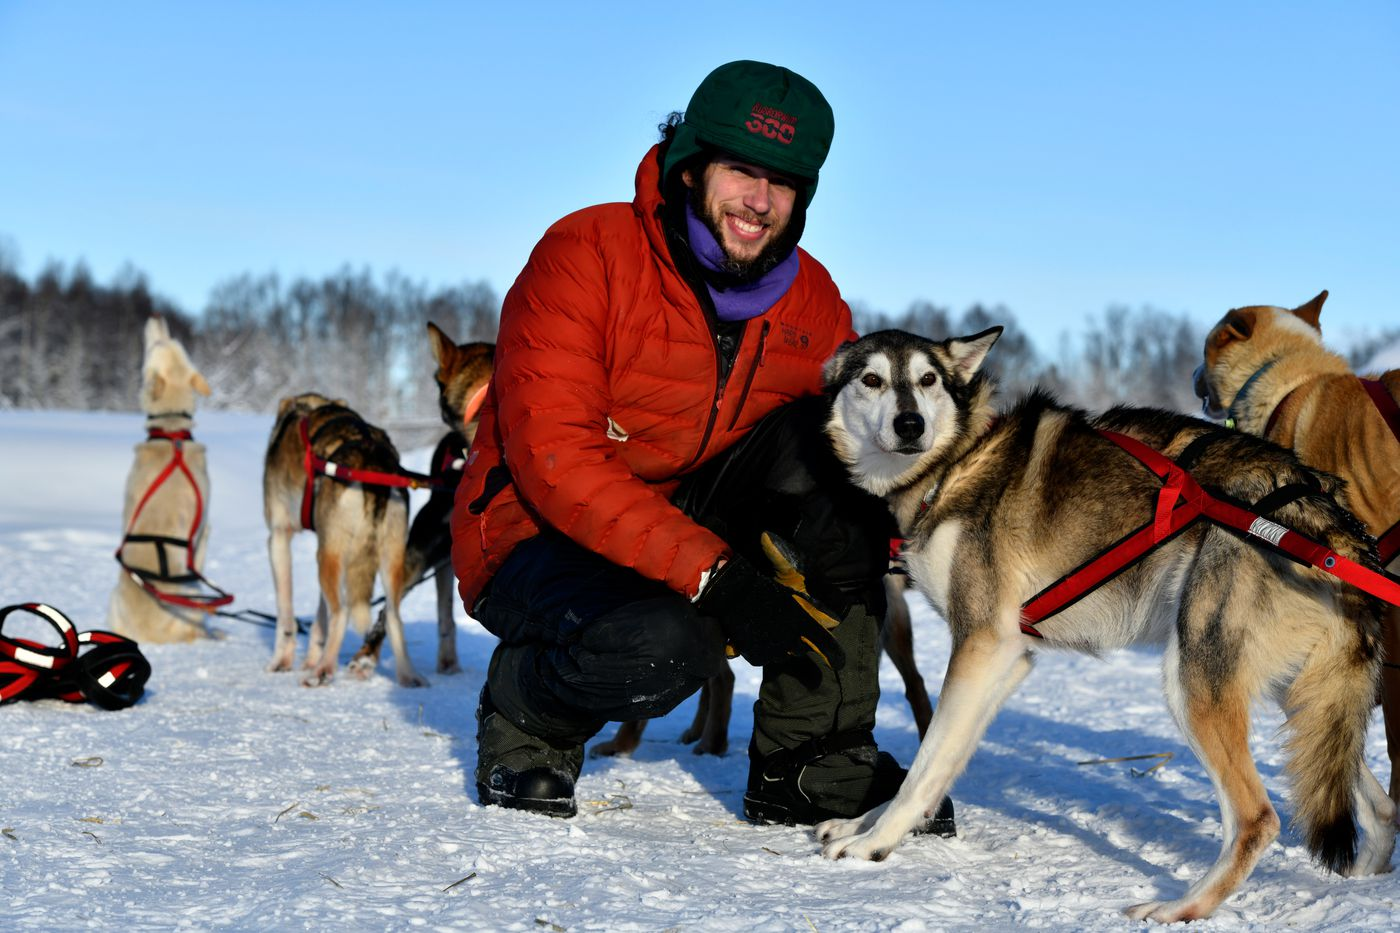 Musher Sean Underwood plans to run a team owned by Dallas Seavey in the 2021 Iditarod. It'll be Underwood's second attempt at the race. Photographed on January 29, 2021. (Marc Lester / ADN)